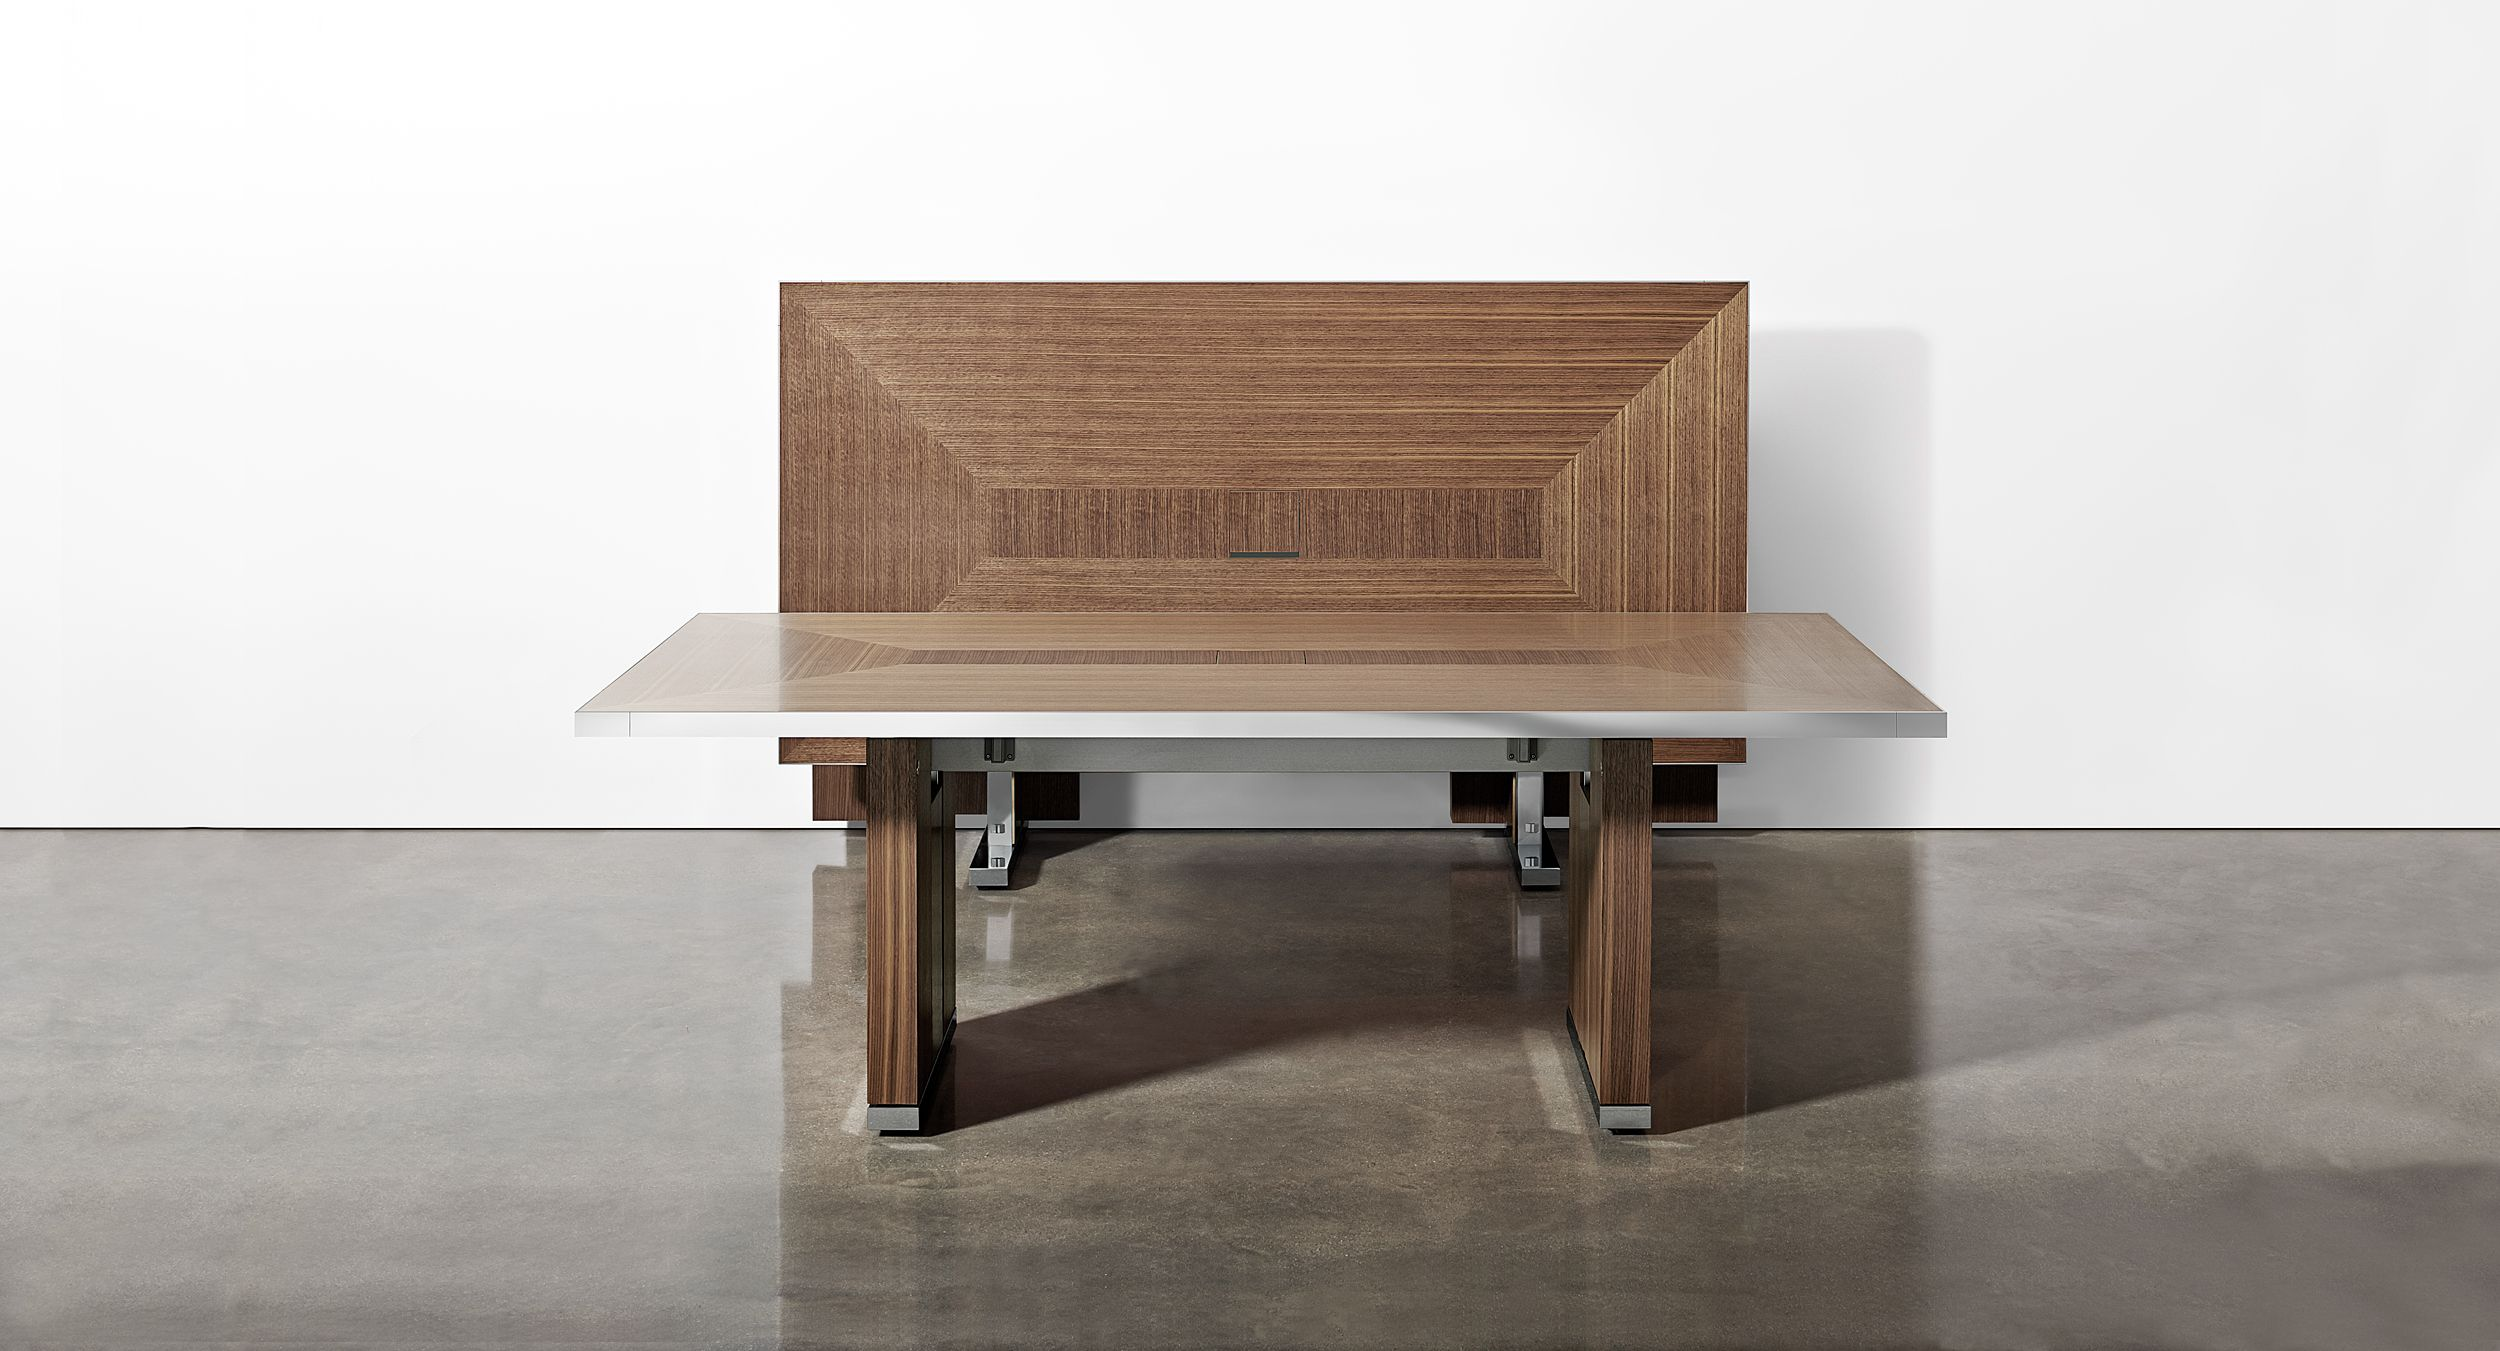 Motus mobile tables with veneer pattern surface